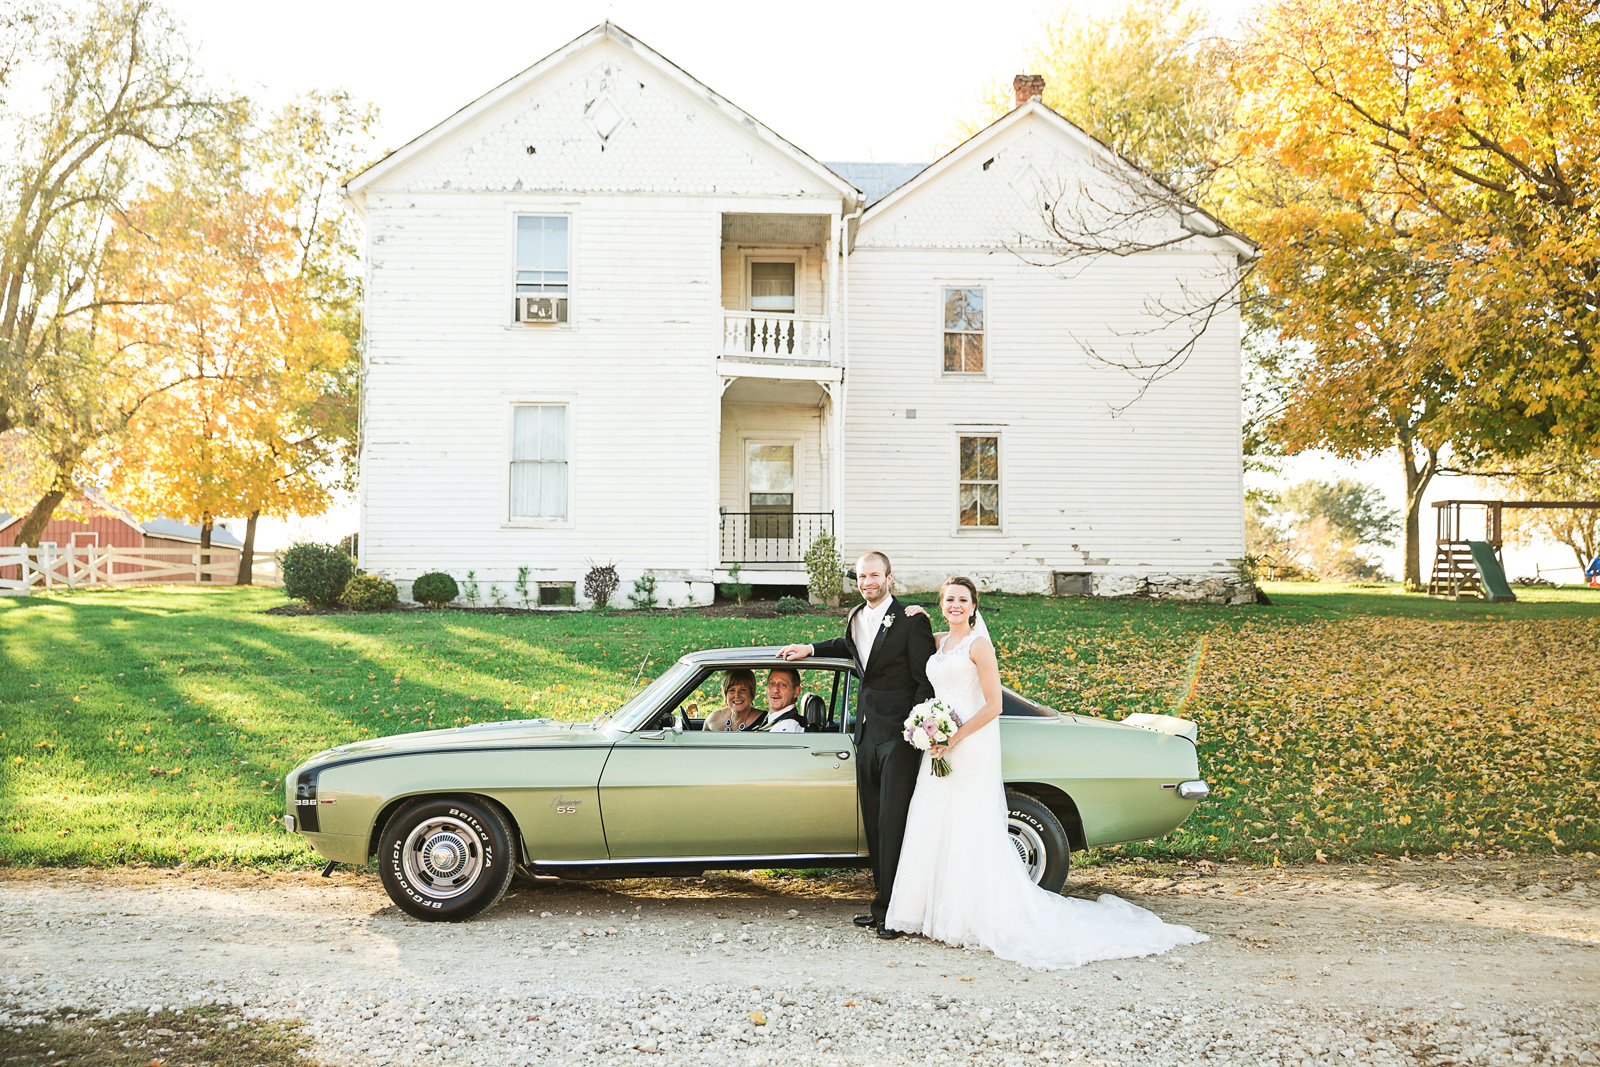 Oldani Photography-St Charles-Wentzville-St Paul-classic cars-red barn-wedding party-wedding photographer-wedding photos_20141025_16282674.jpg